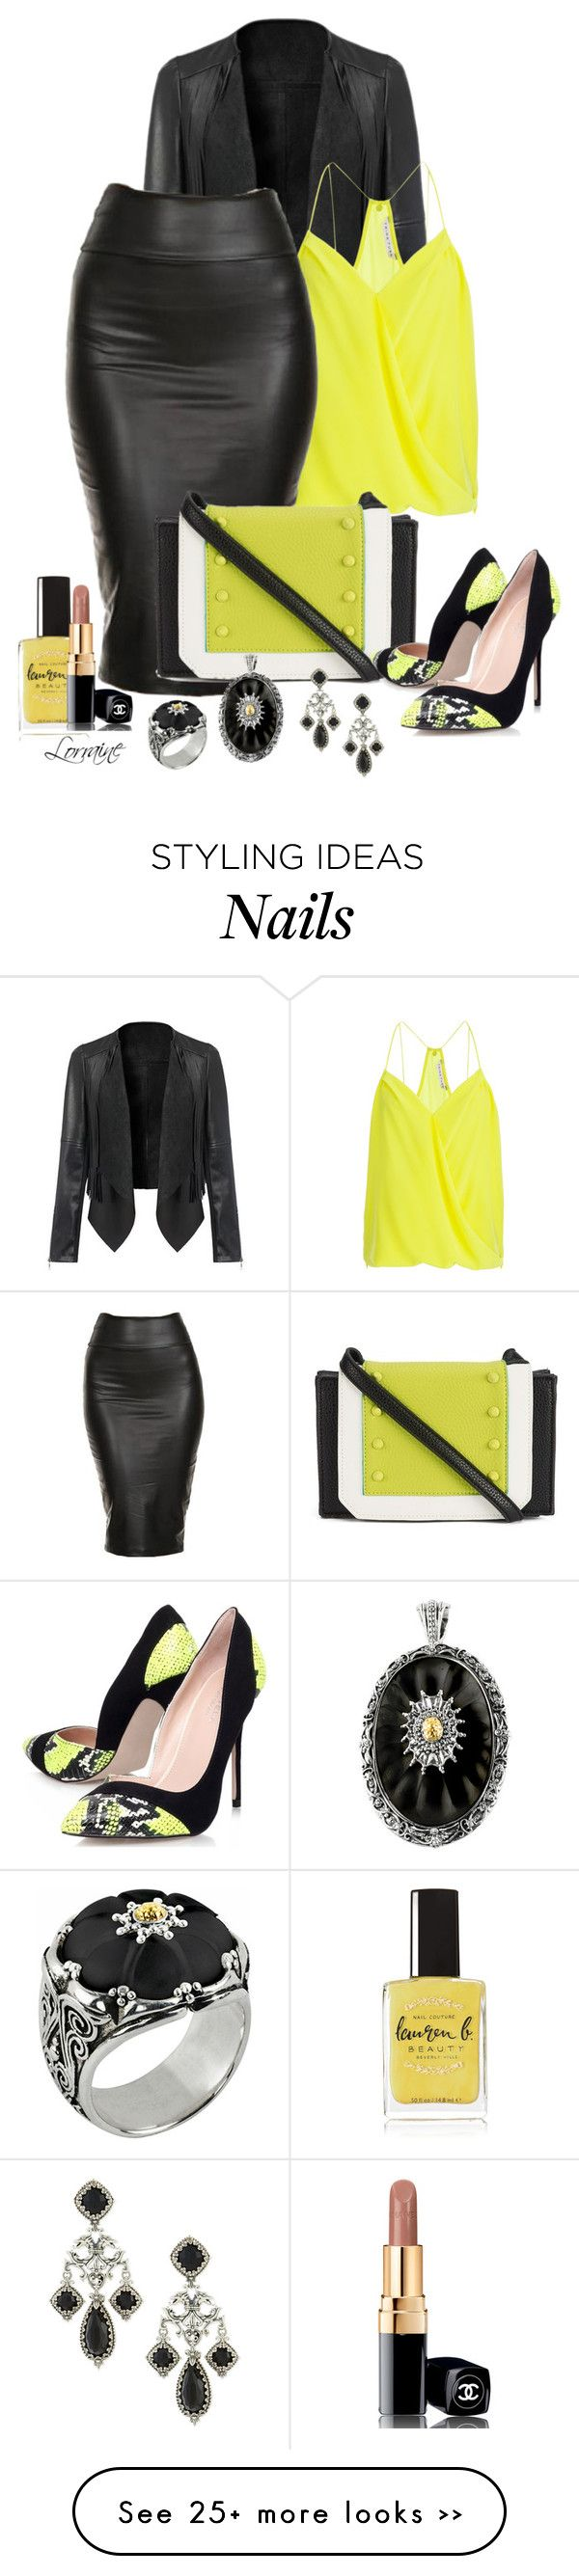 """Yellow Top"" by lorrainekeenan on Polyvore"